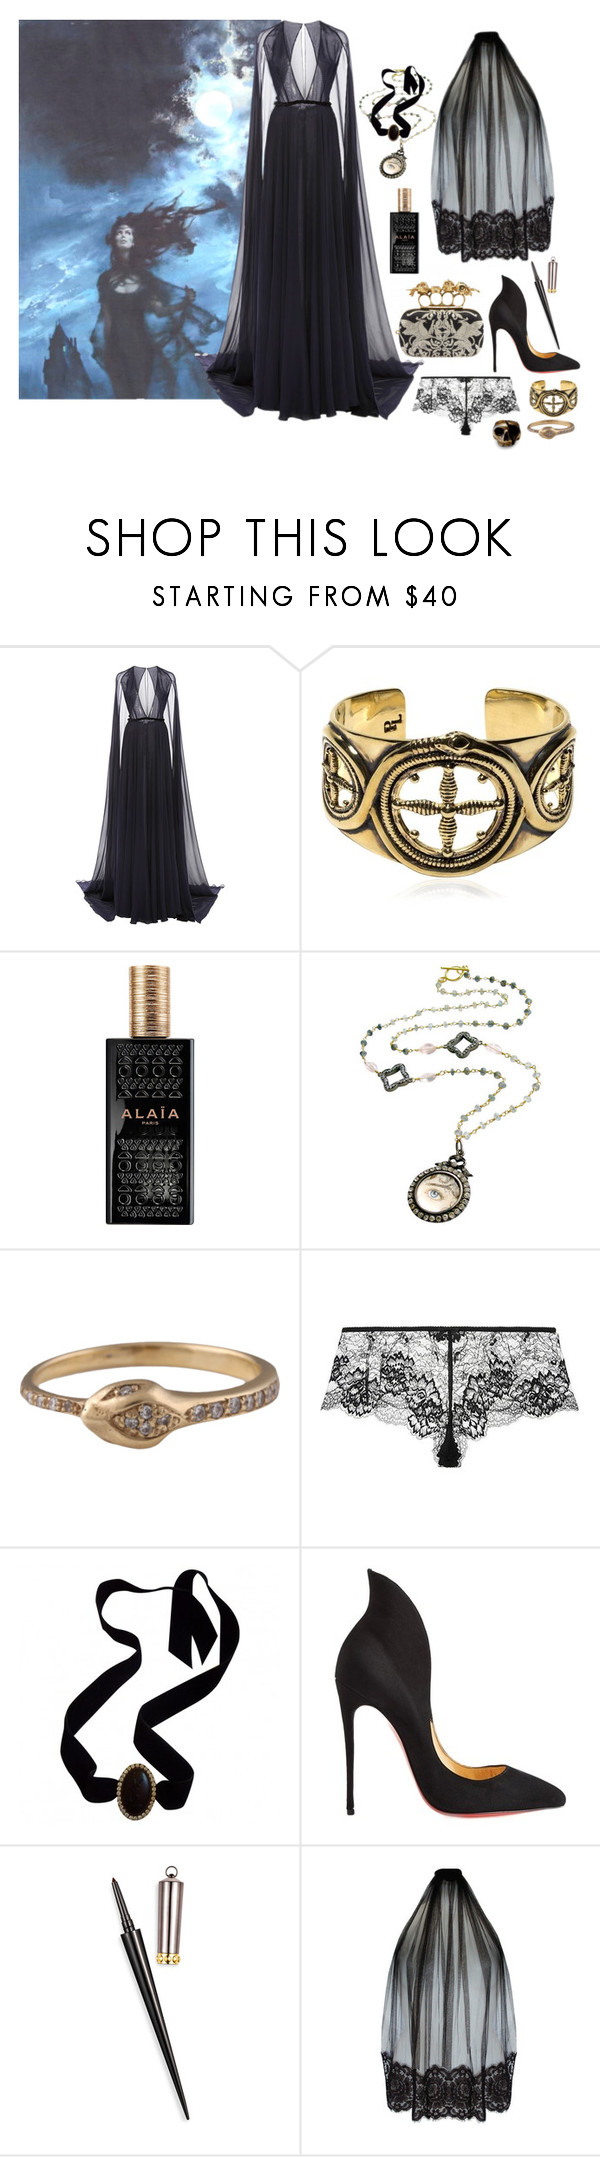 """""""How to wear a gothic romance novel"""" by ghoulnextdoor ❤ liked on Polyvore featuring Naeem Khan, Pamela Love, Alaïa, Yves Saint Laurent, Christian Louboutin and Loveday London"""